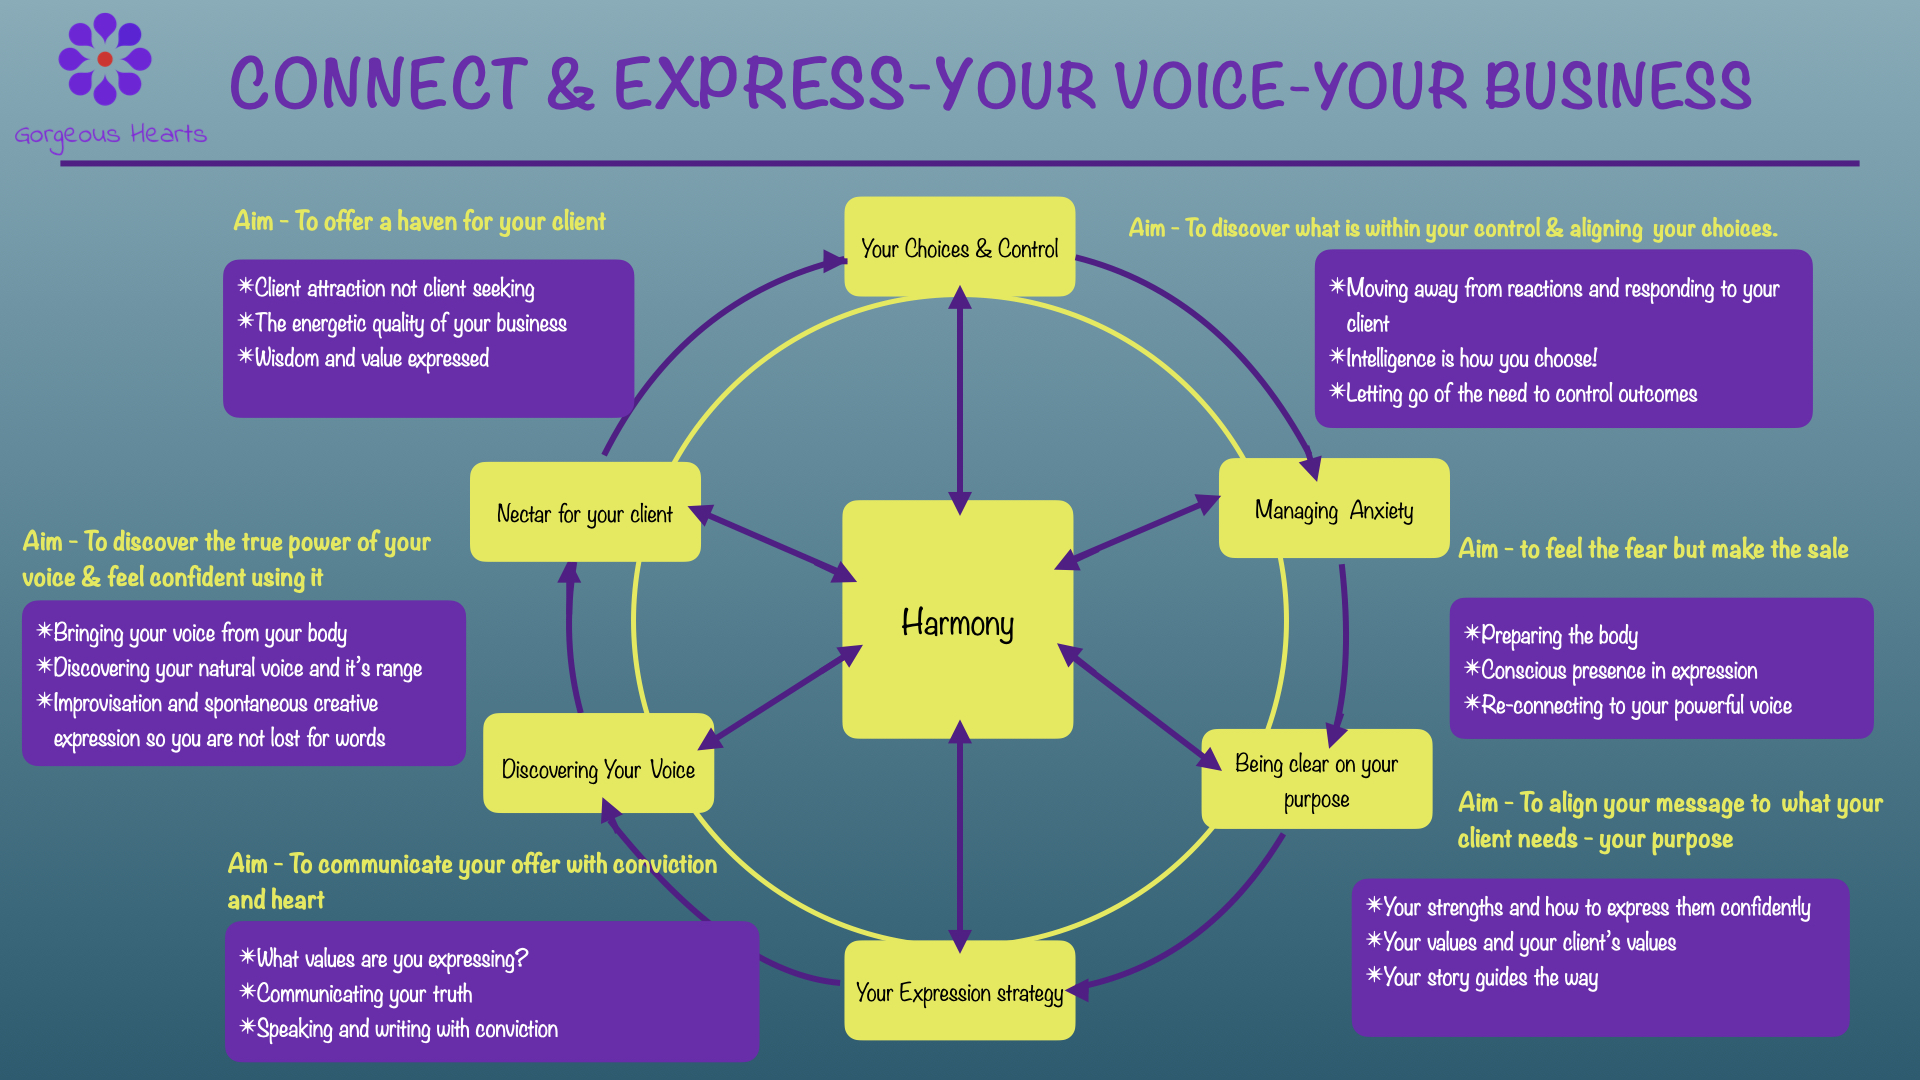 Connect and Express plan